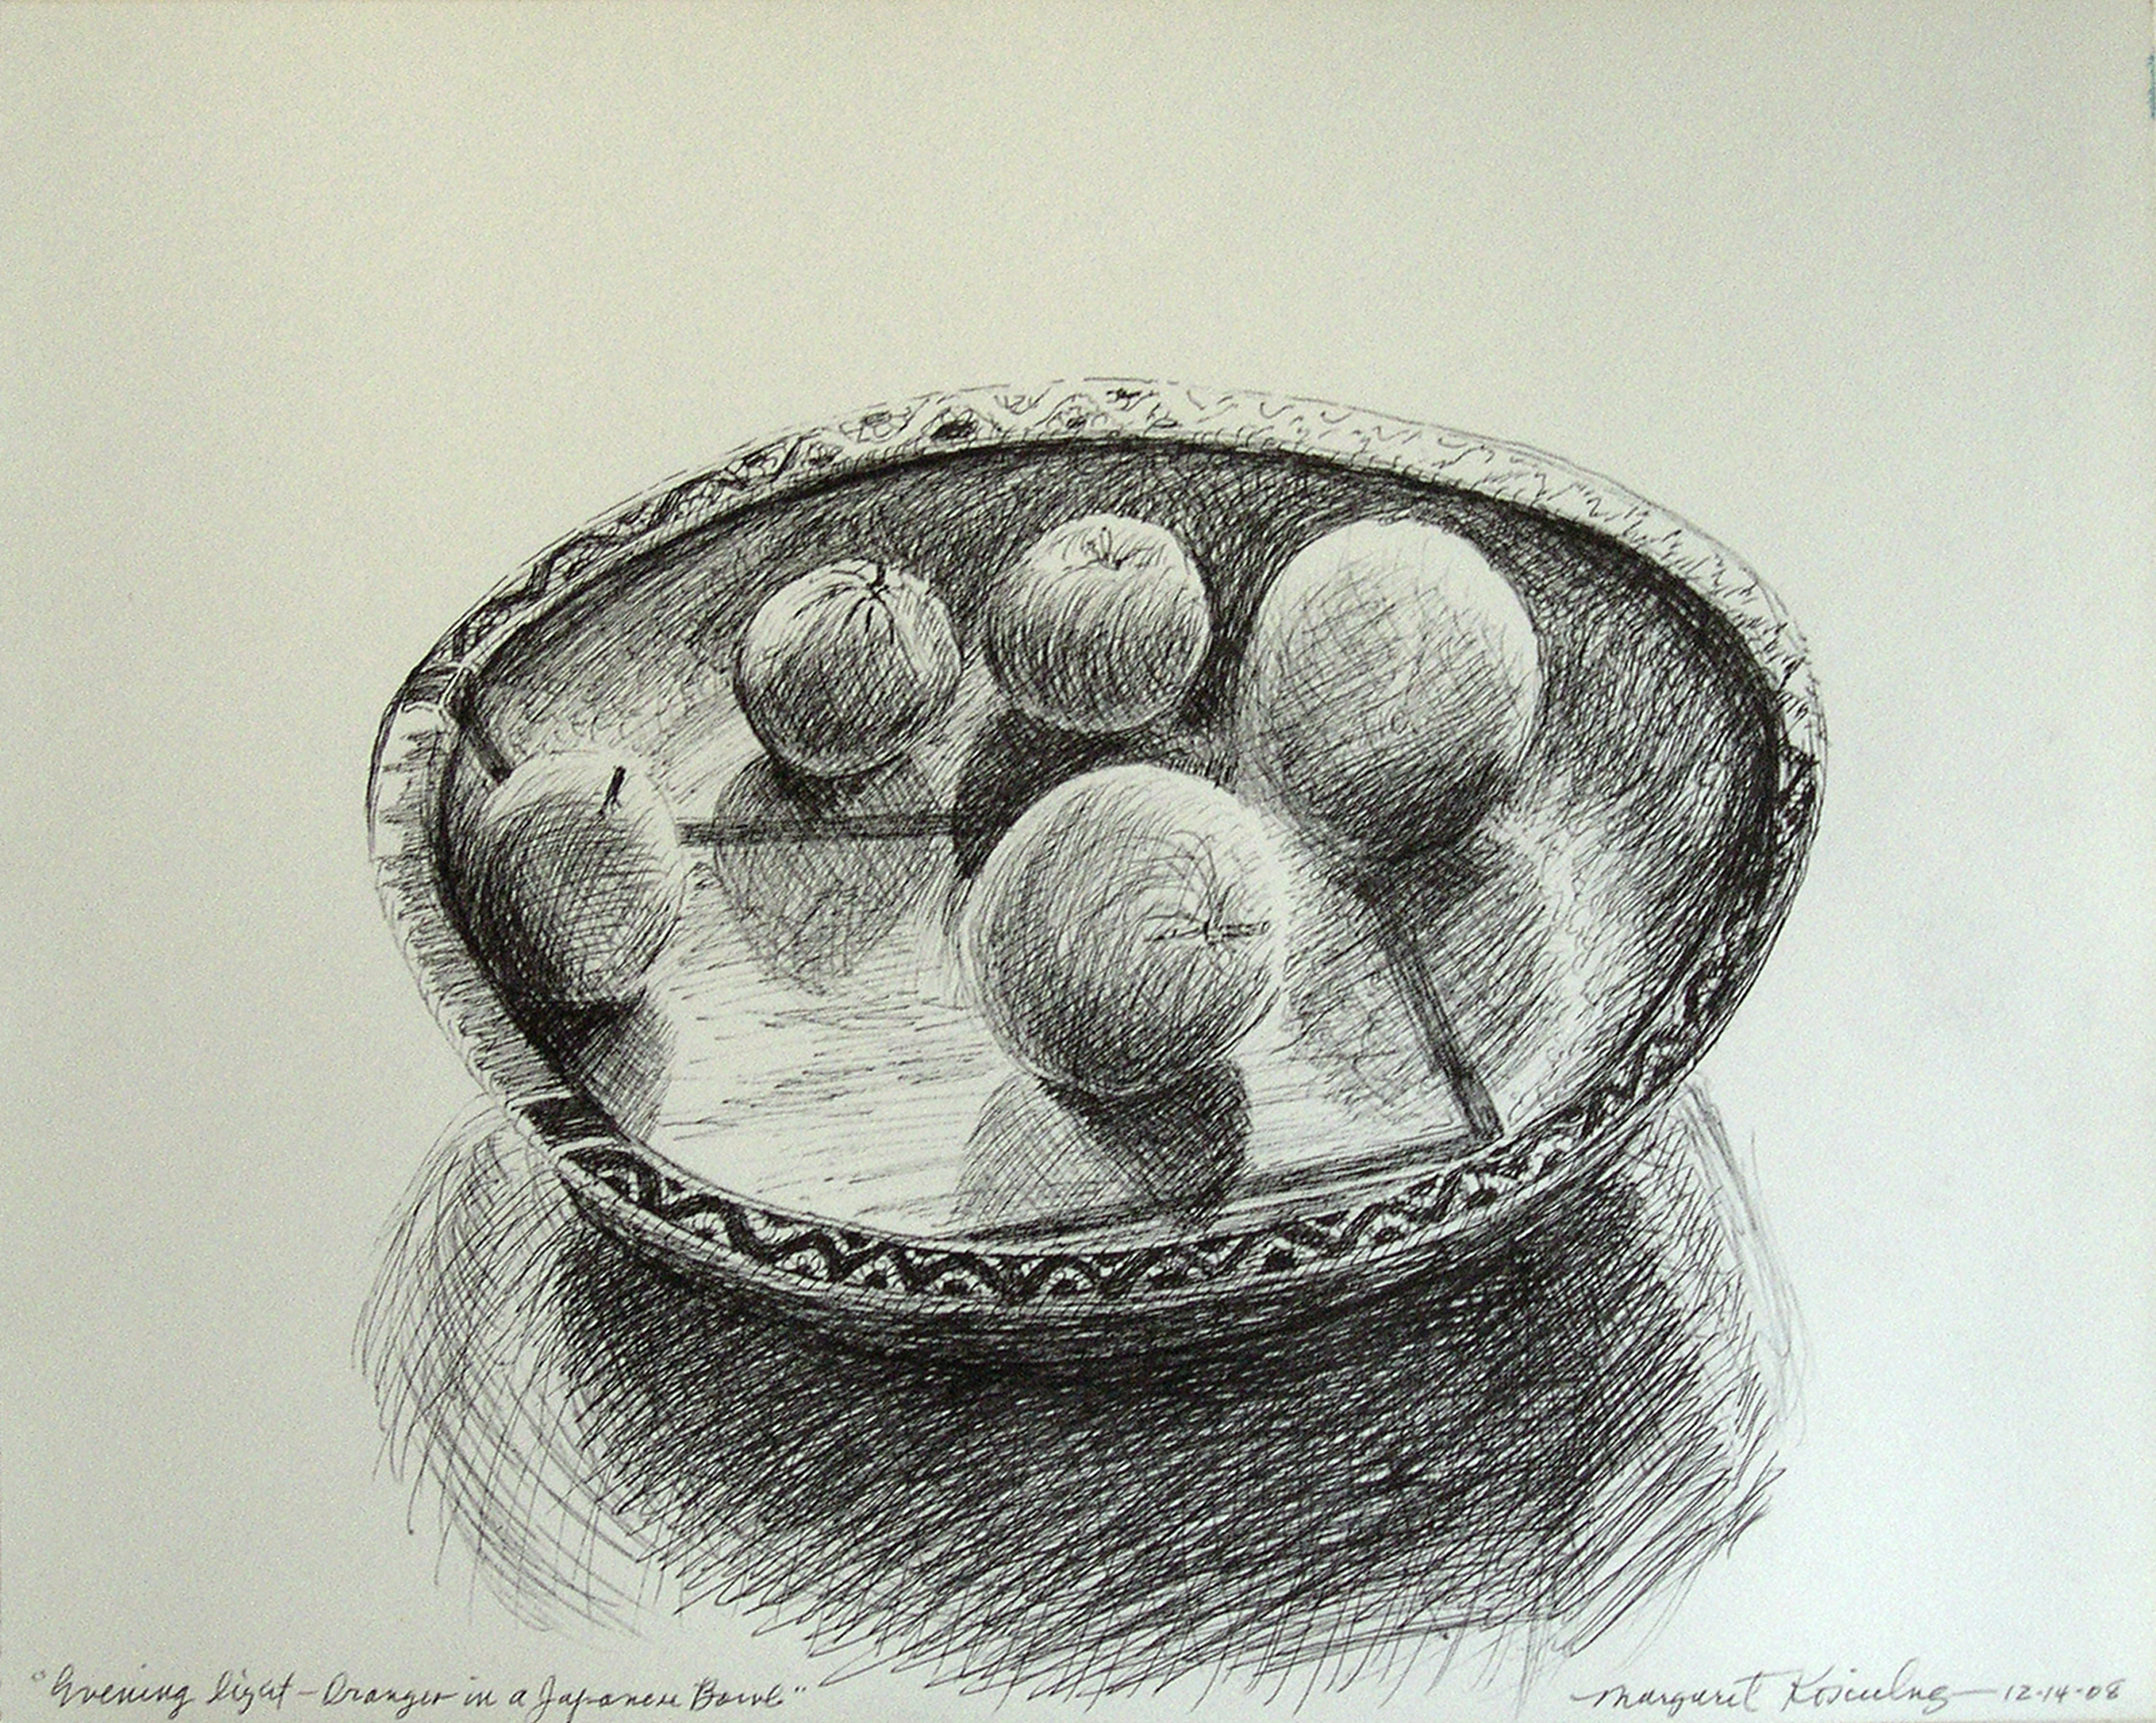 Evening_Light_Oranges_In_Japanese_Bowl.jpg